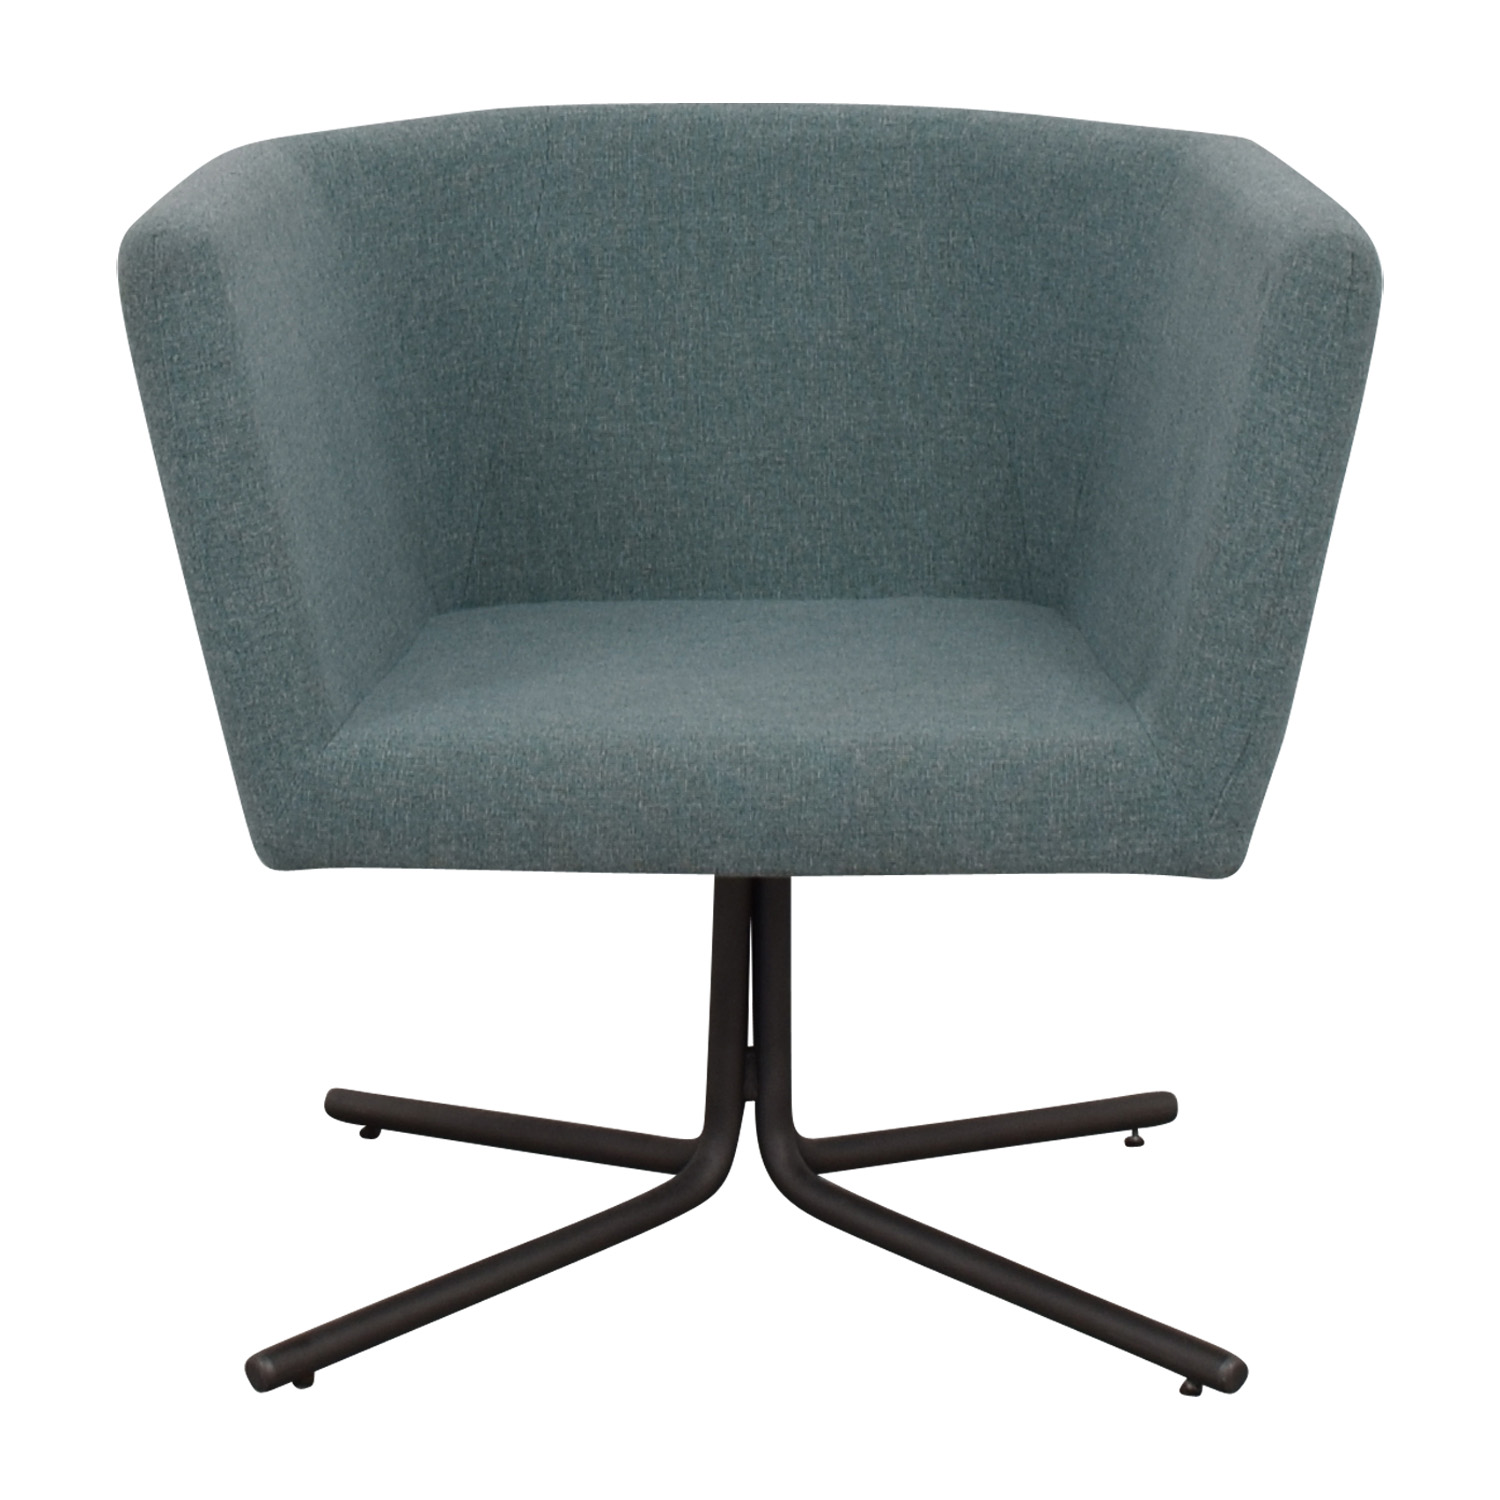 CB2 Facetta Cyan Chair / Accent Chairs